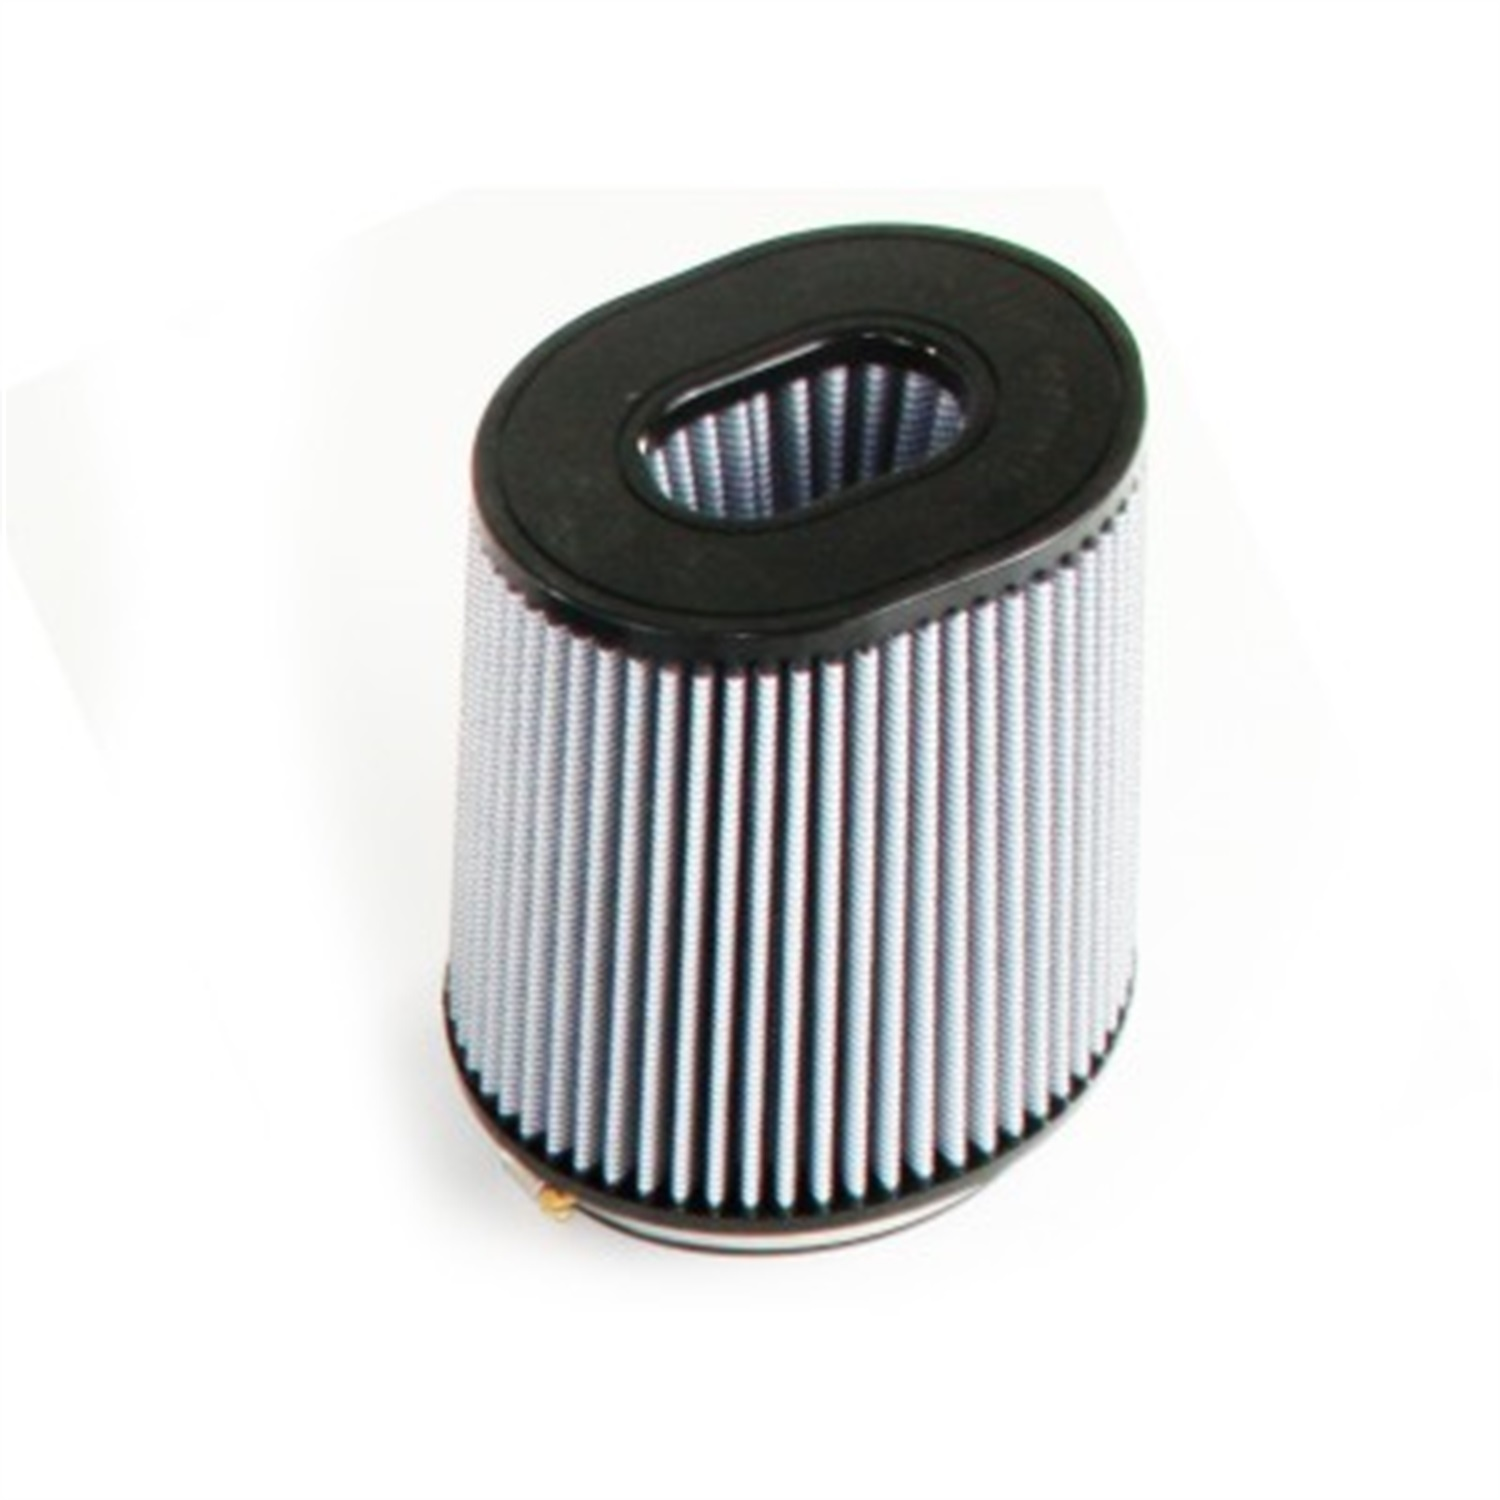 aFe Power 21-91050 MagnumFLOW Intake PRO DRY S Air Filter 21-91050